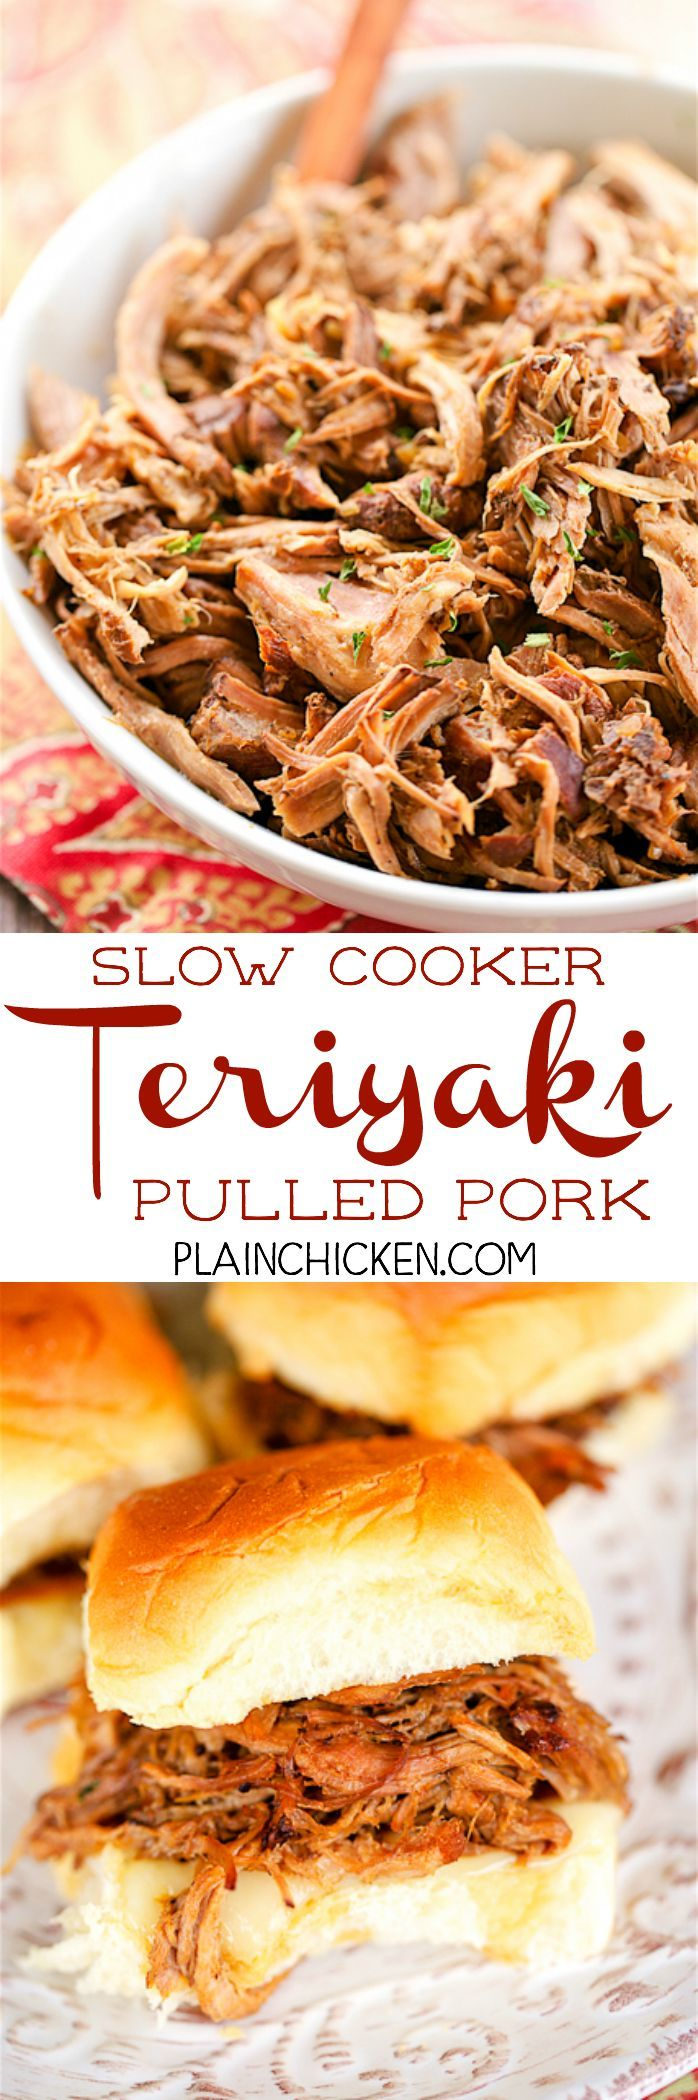 Slow Cooker Teriyaki Pulled Pork - THE BEST pulled pork!! Pork shoulder slow cooked with onions, worcestershire sauce, teriyaki sauce and water. I ate this for a week! SO good!! Serve on Hawaiian Rolls with provolone cheese for parties. Can assemble ahead